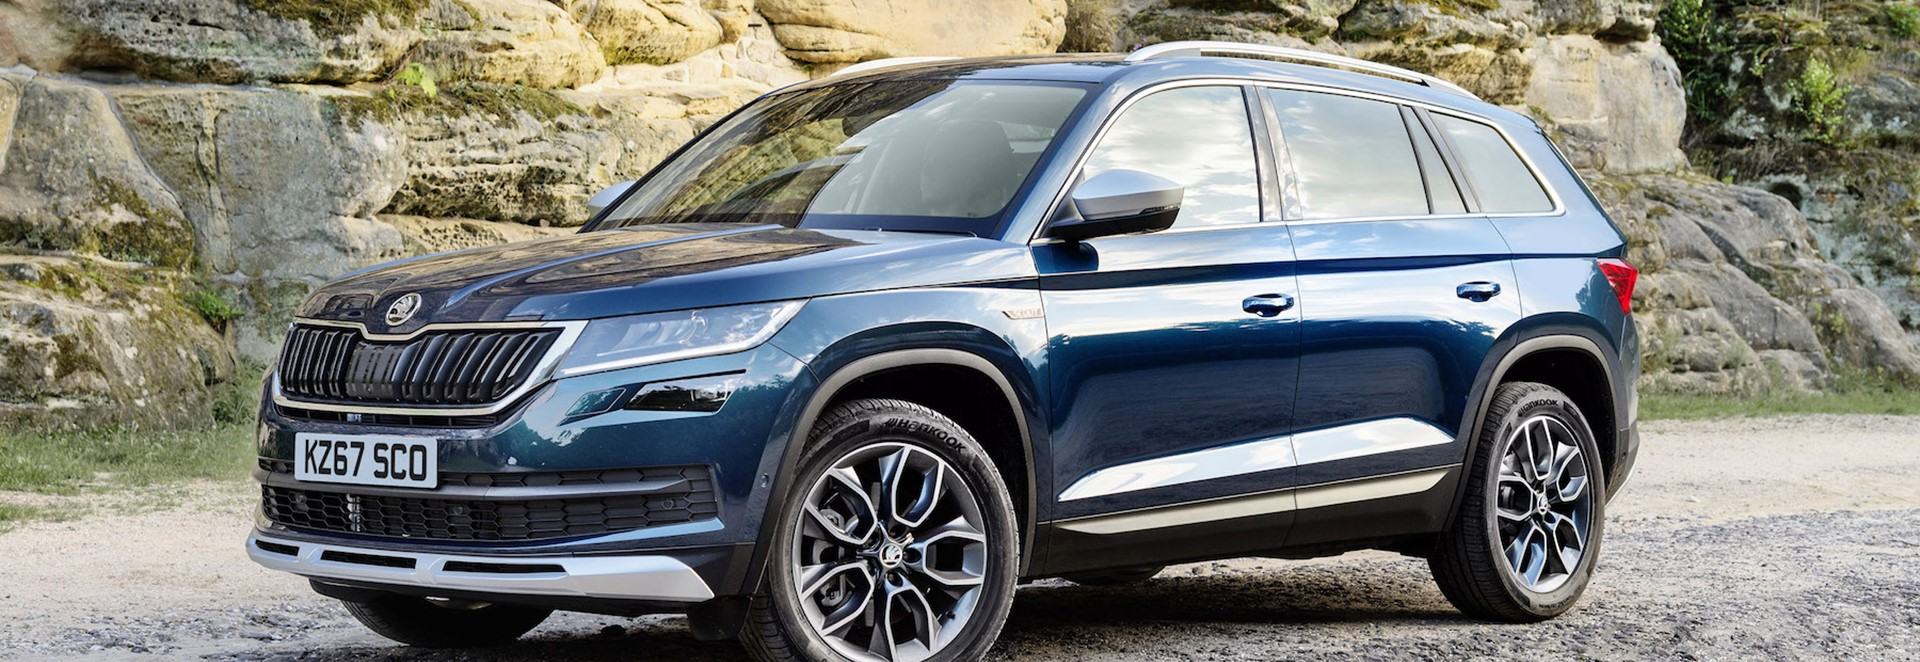 Skoda adds Scout edition to the Kodiaq line-up